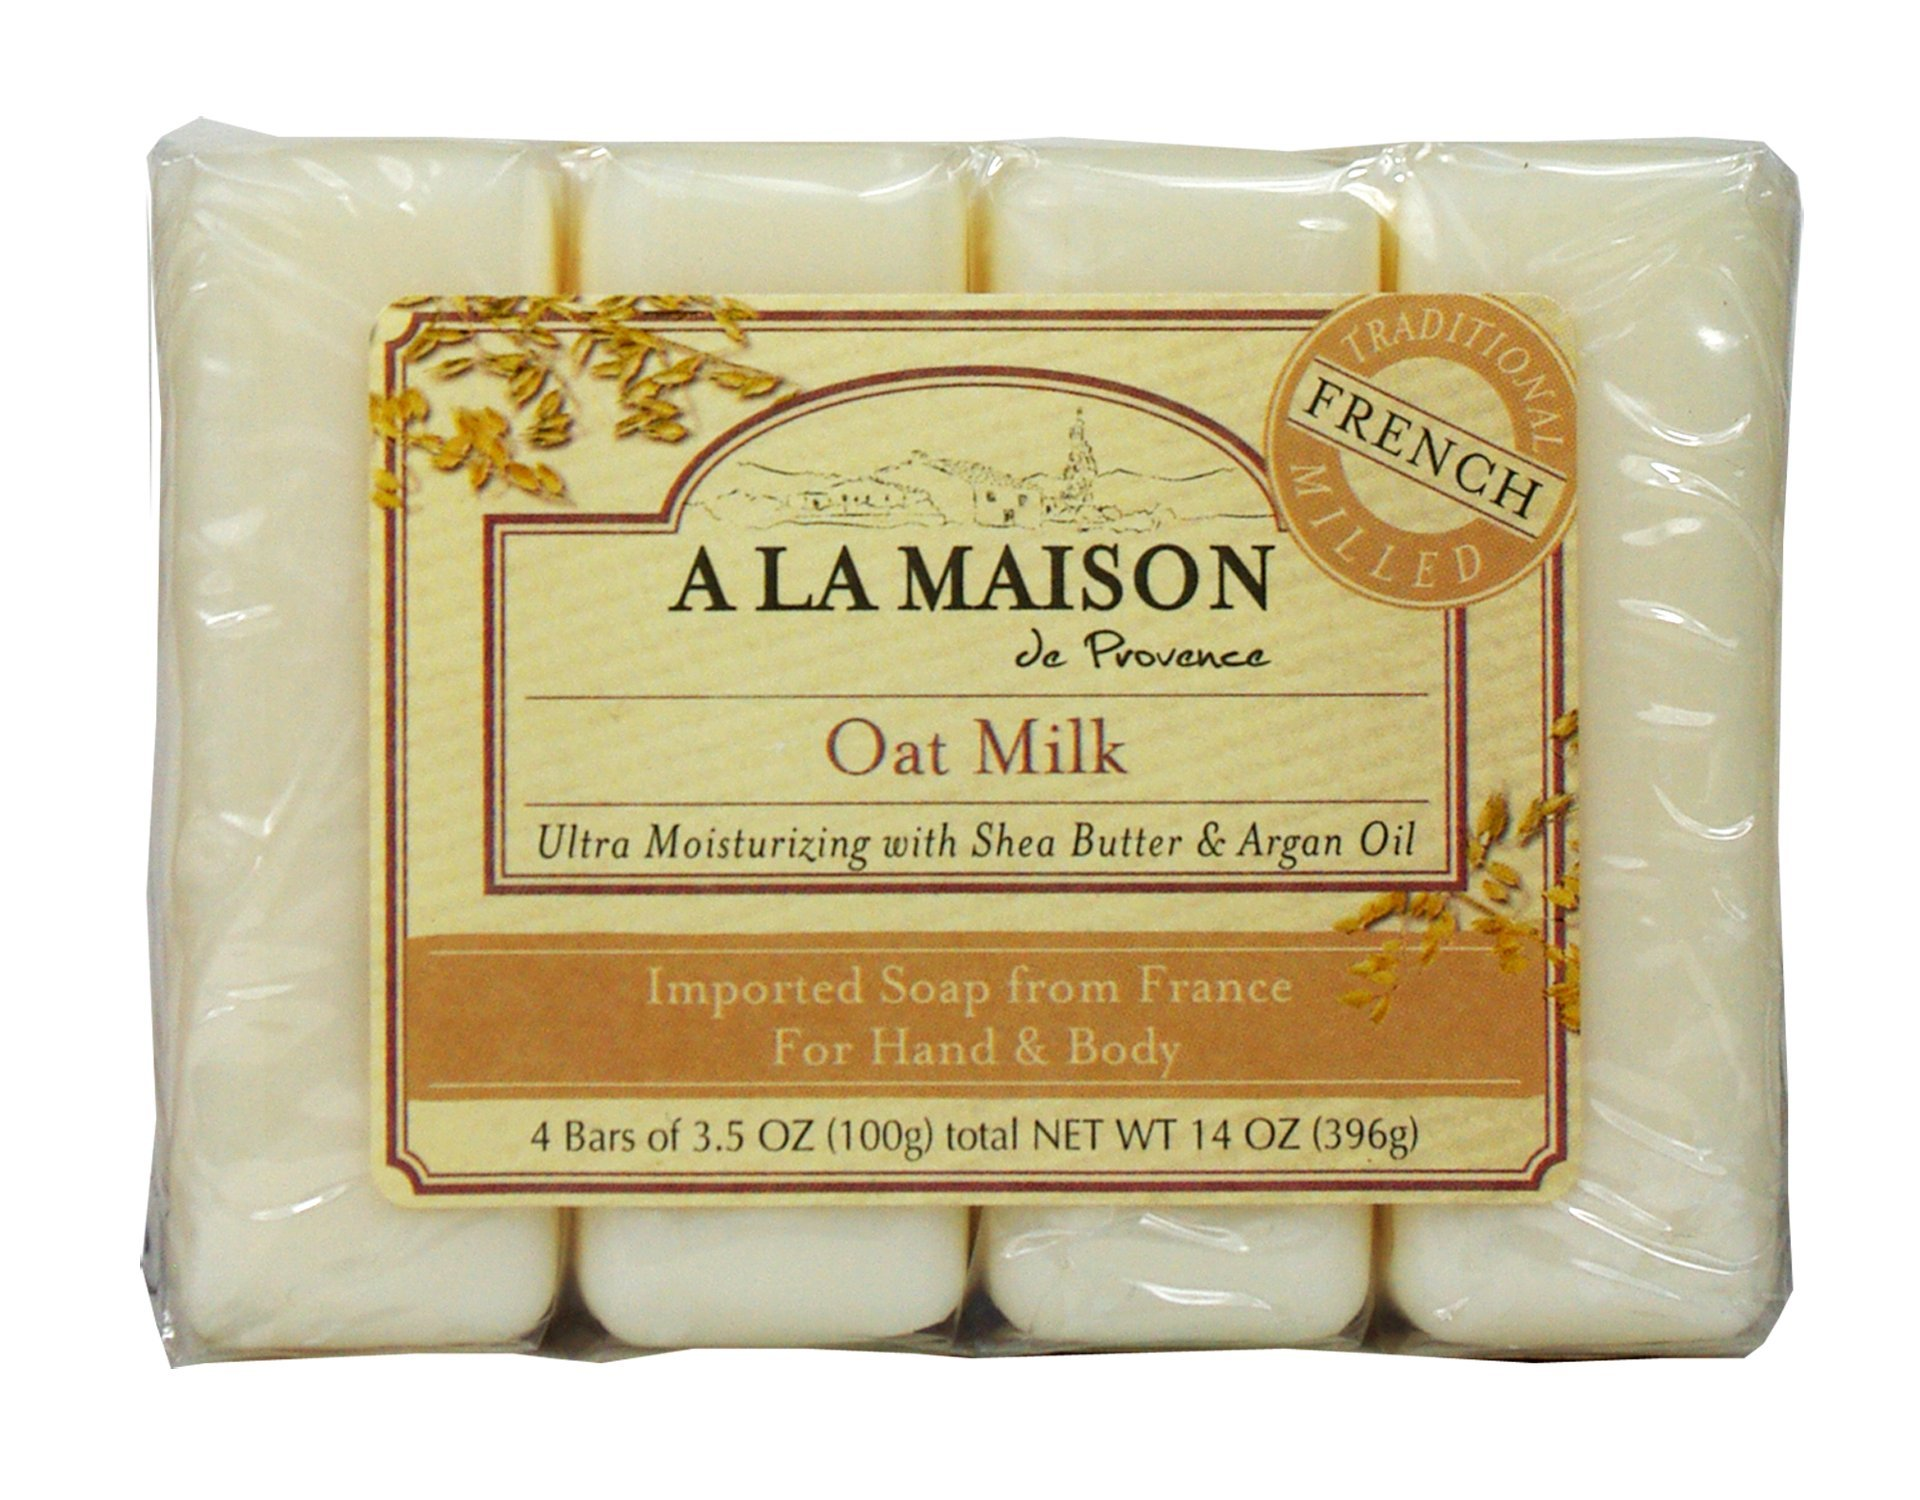 A la maison soap bars value pack oat milk 4 count ebay for A la maison soap